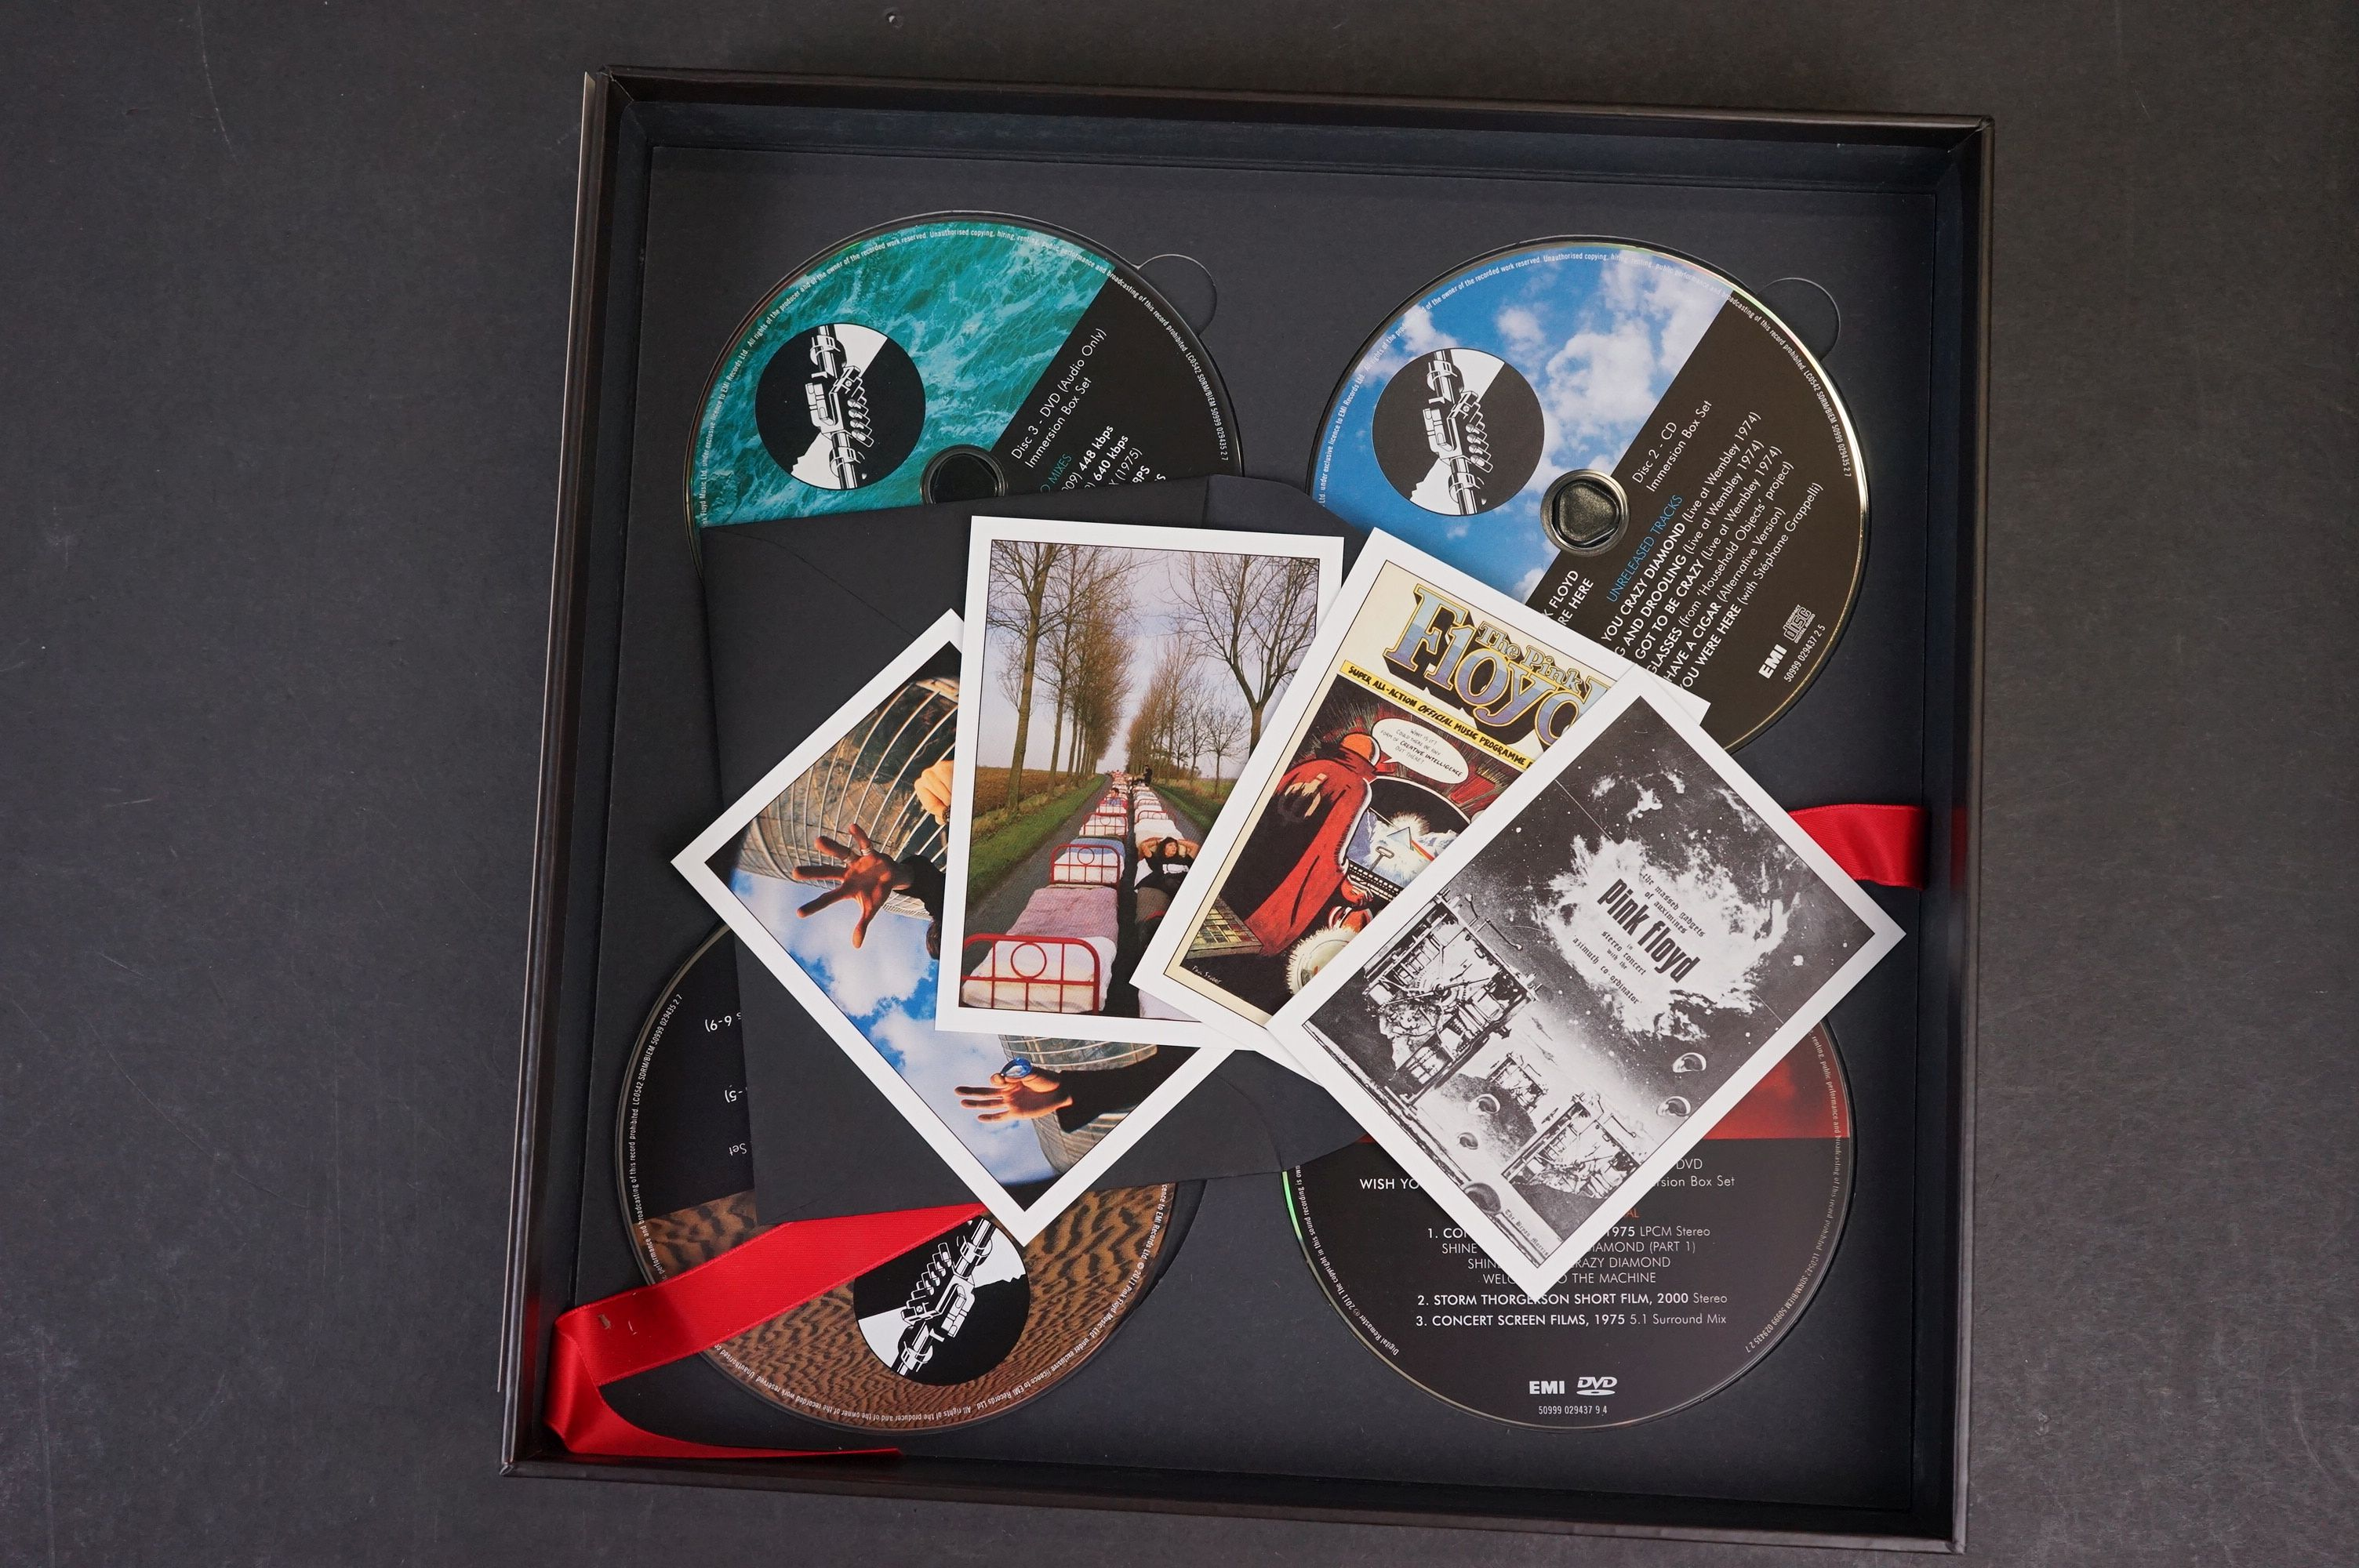 CD / DVD / Bluray - Pink Floyd Wish You Were Here 5 disc box set ex - Image 10 of 13